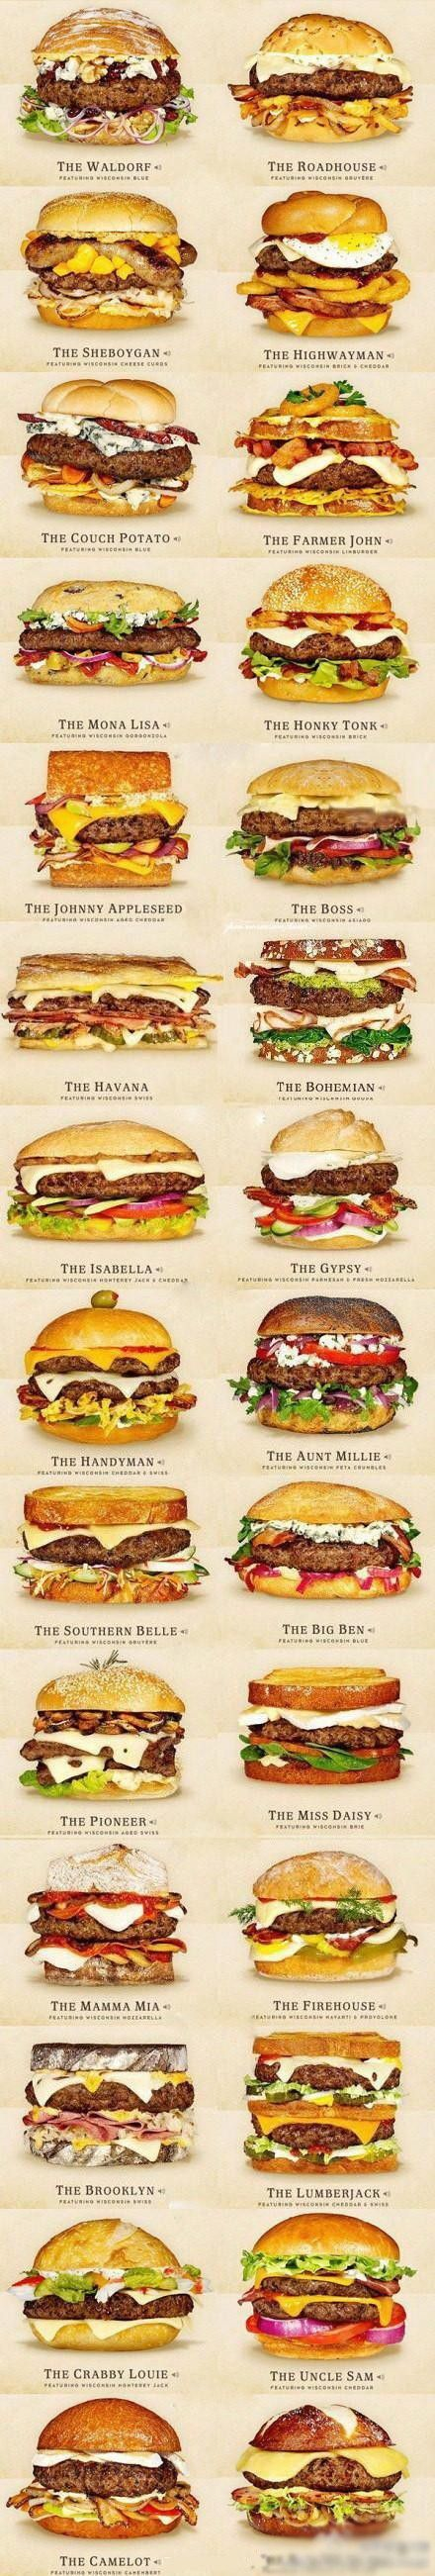 Cheeseburger Ideas and #Recipes